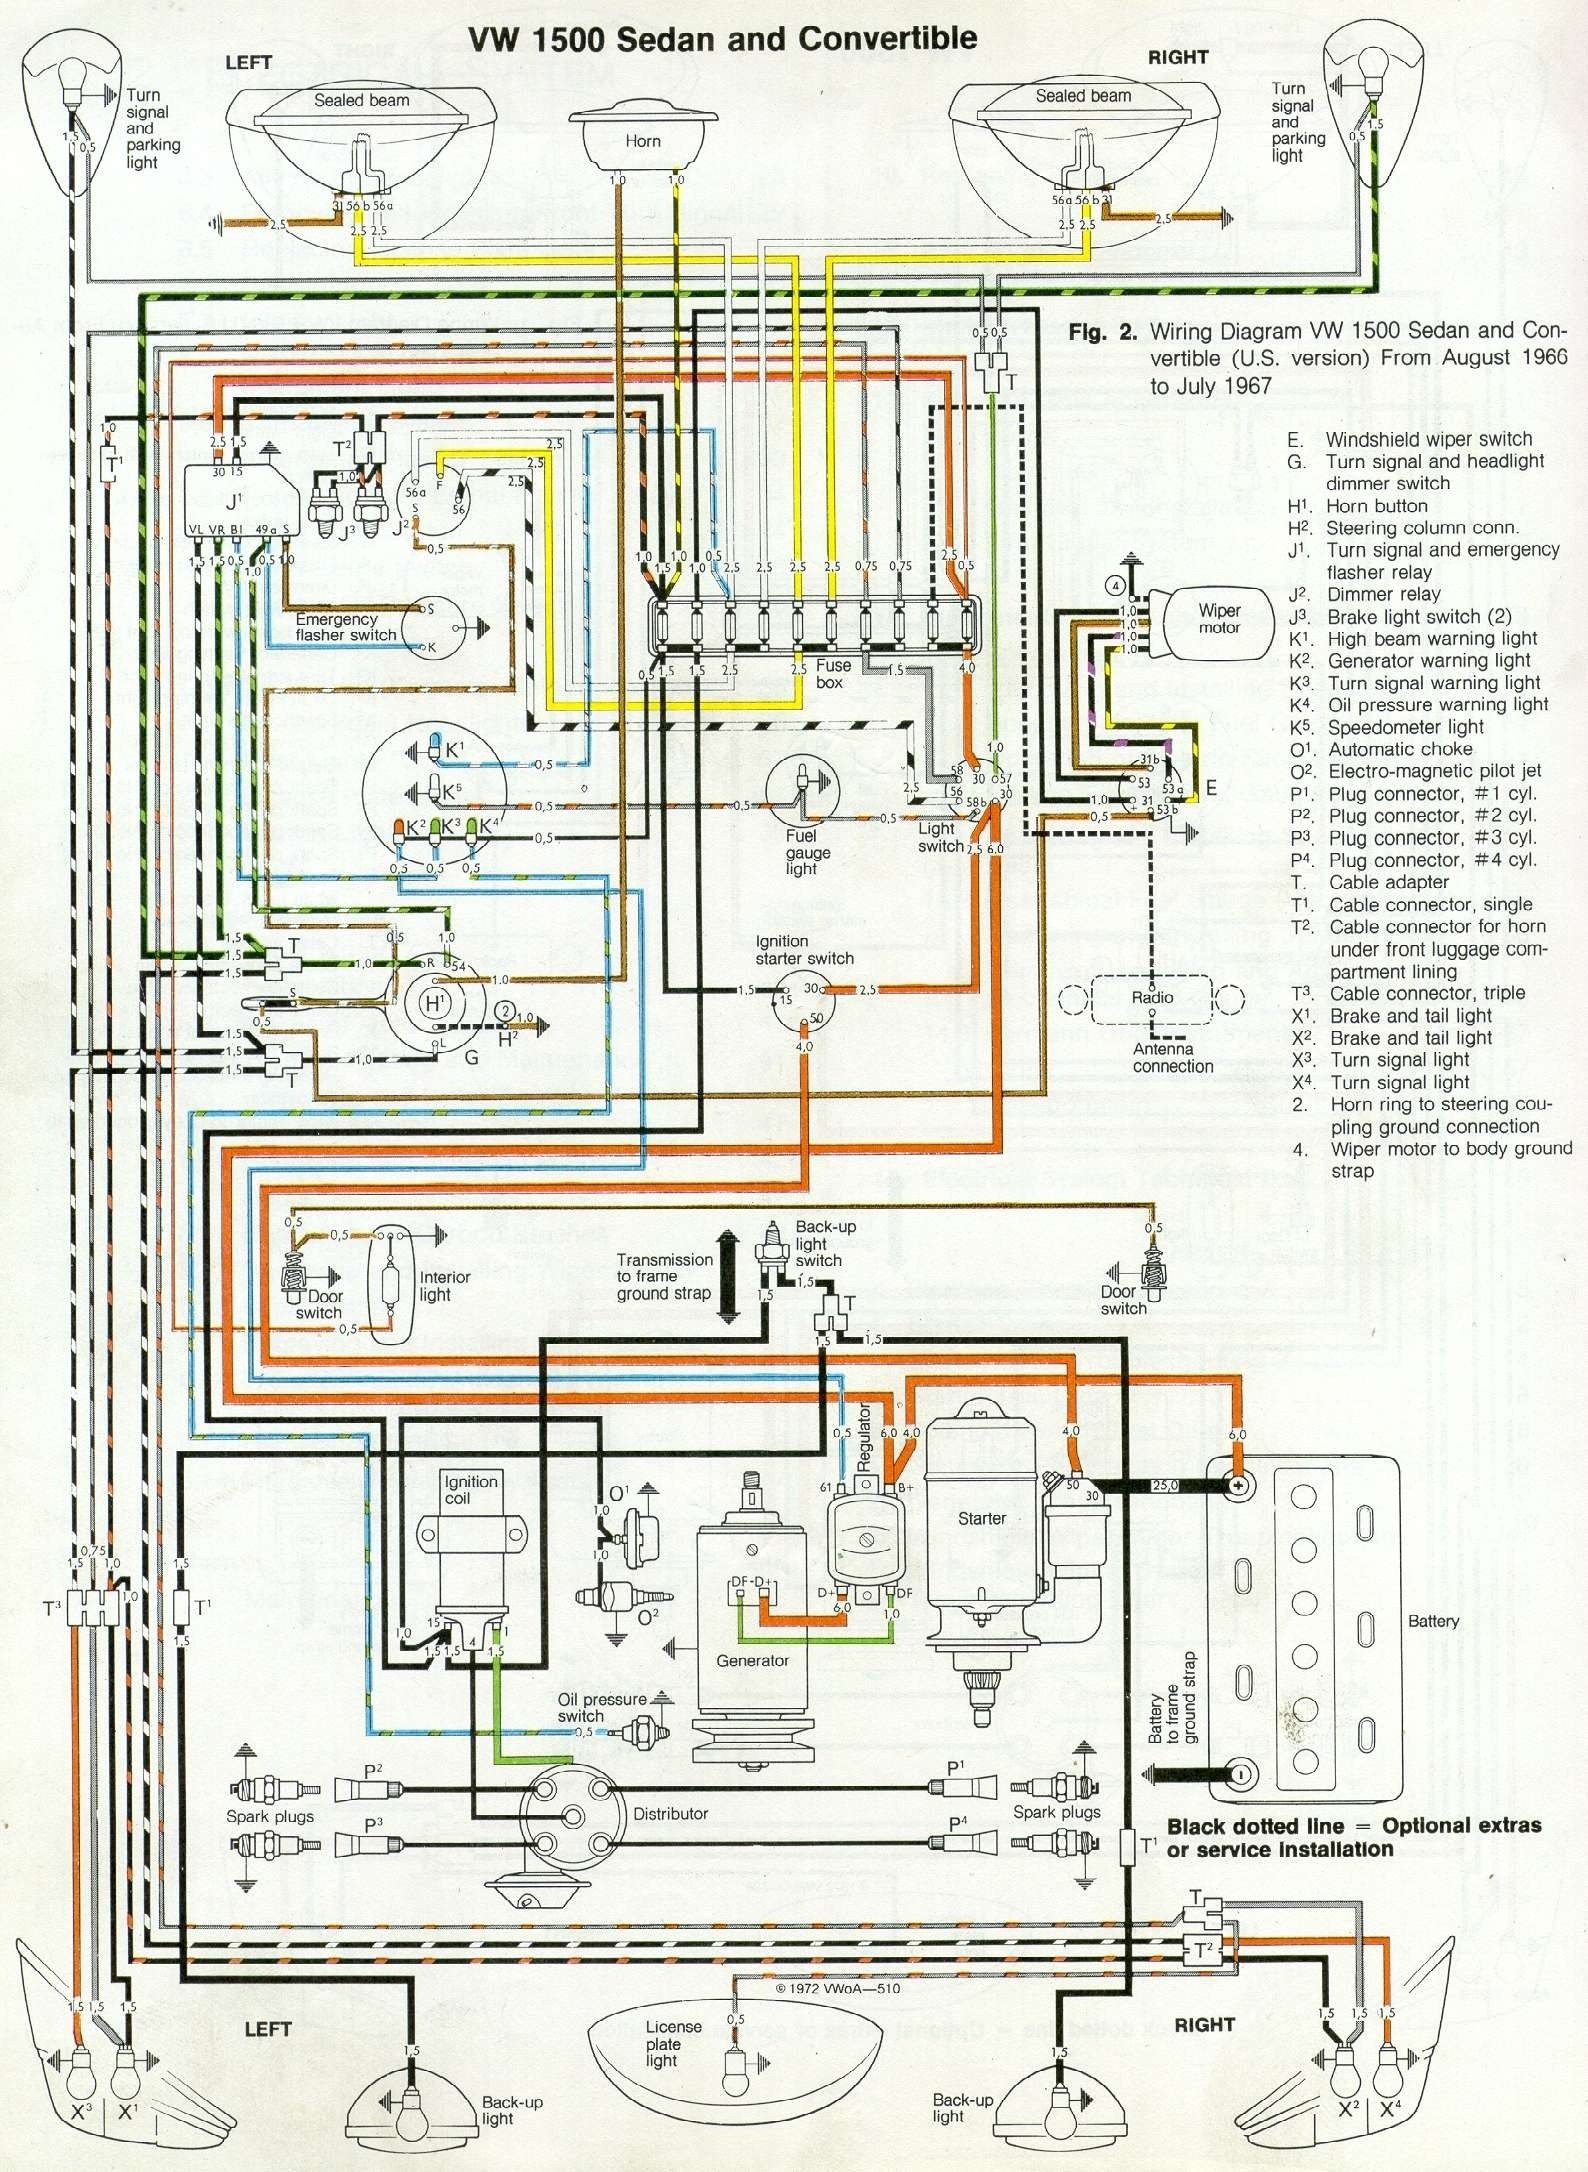 and vw beetle wiring diagram vw beetles and beetle 66 and 67 vw beetle wiring diagram